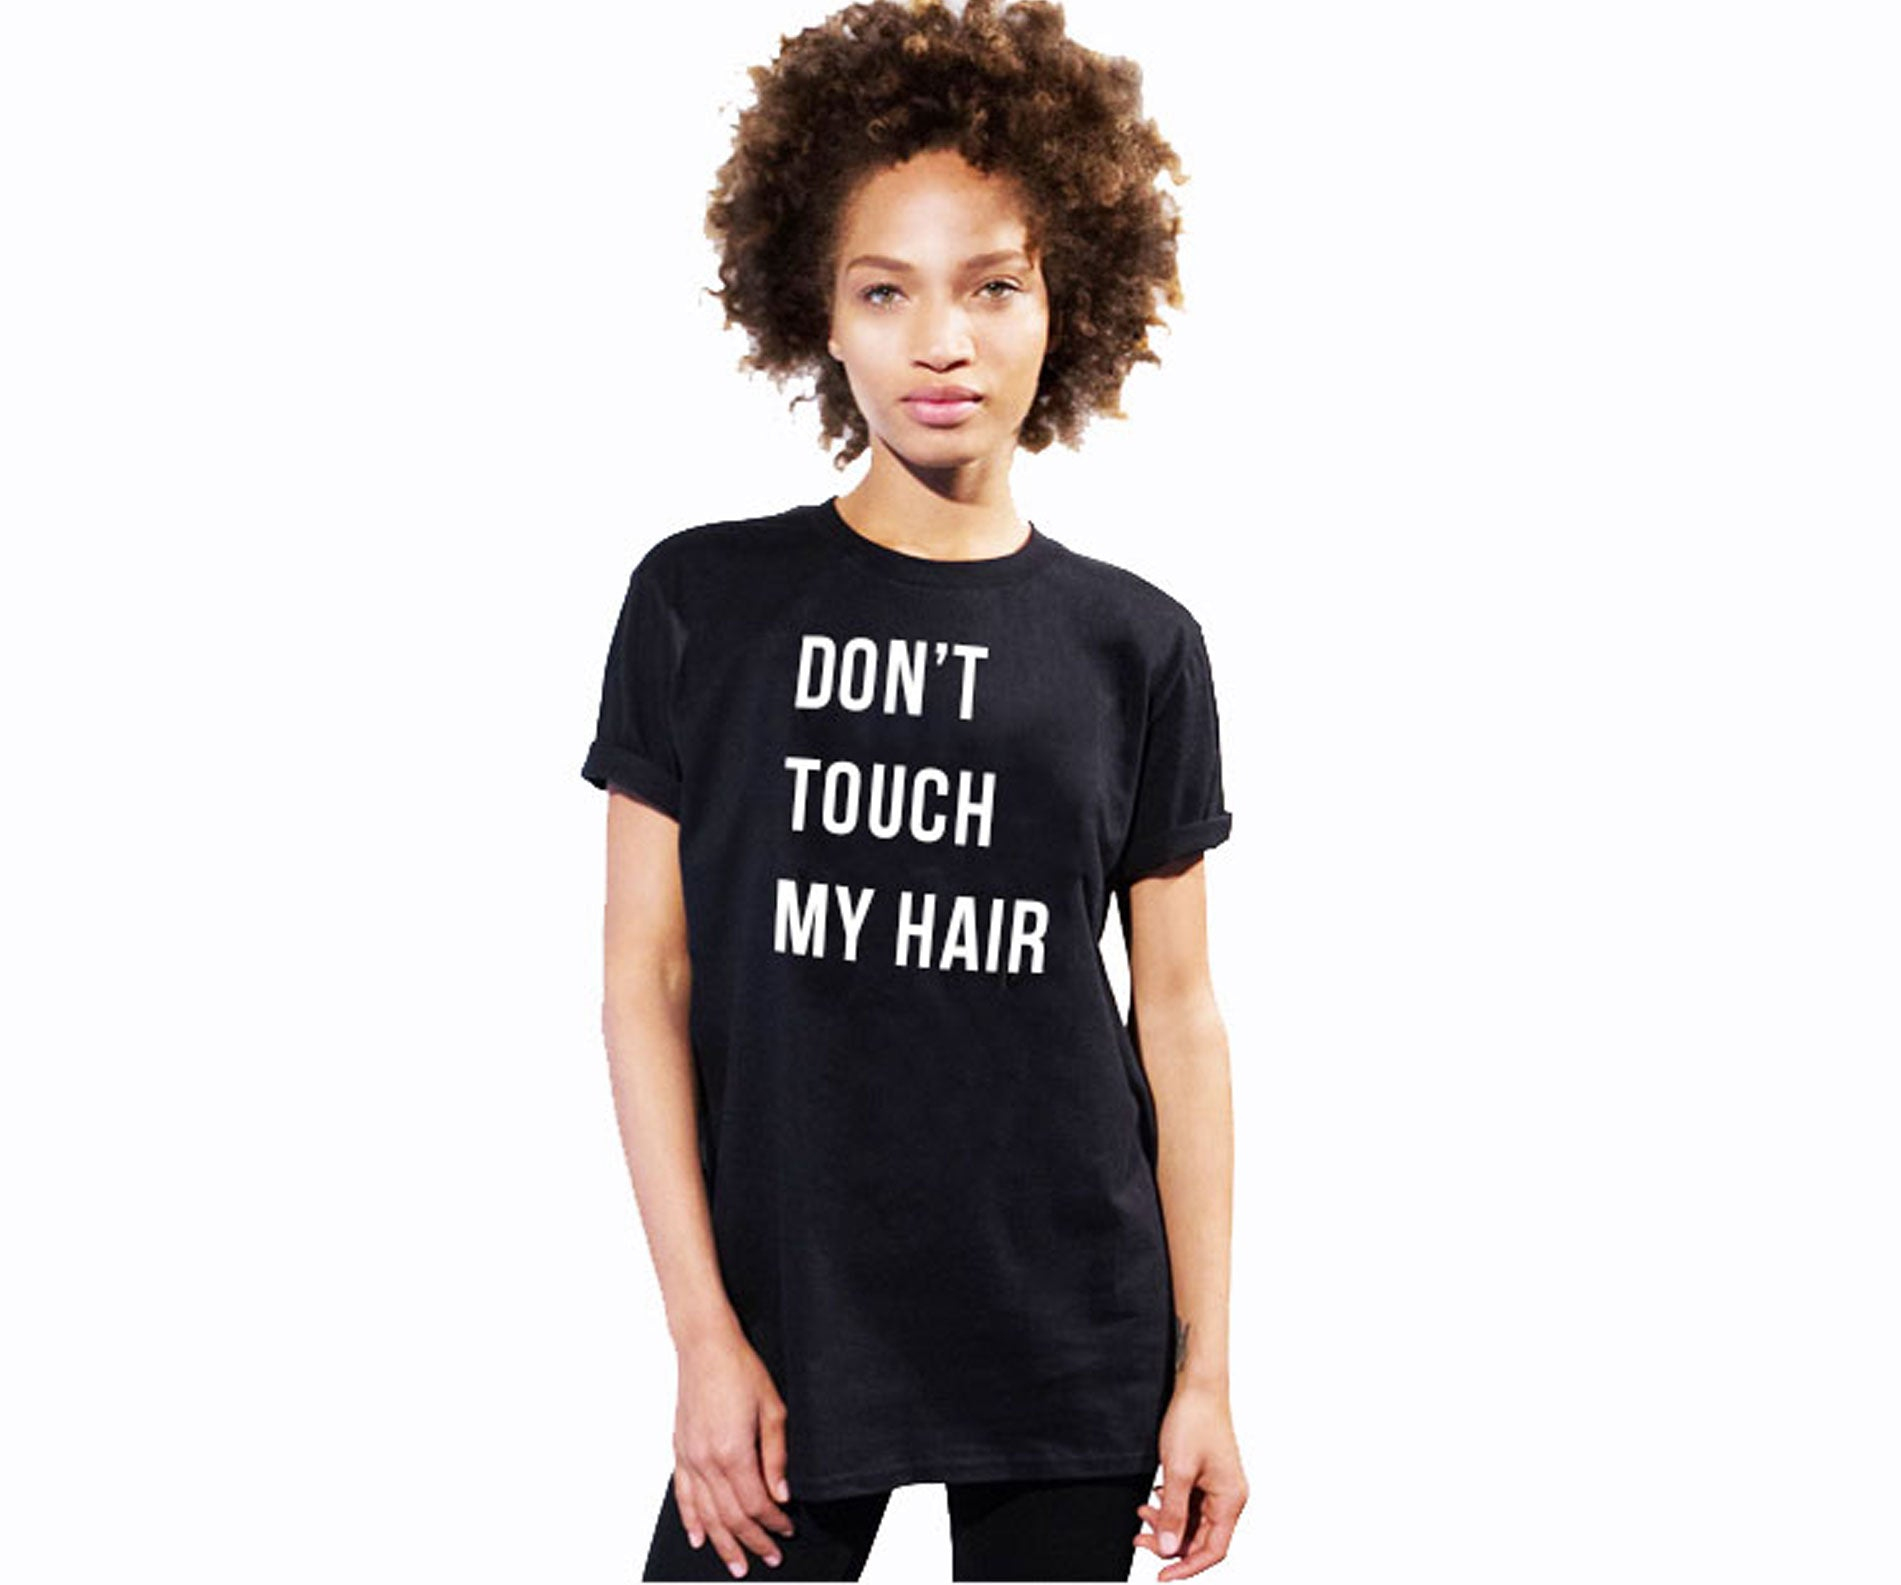 Don't touch my hair T-Shirt-Luxury Brand LA - Luxury Brand LA - Shop Latest Trends and Hottest Apparel from Luxury Brand LA